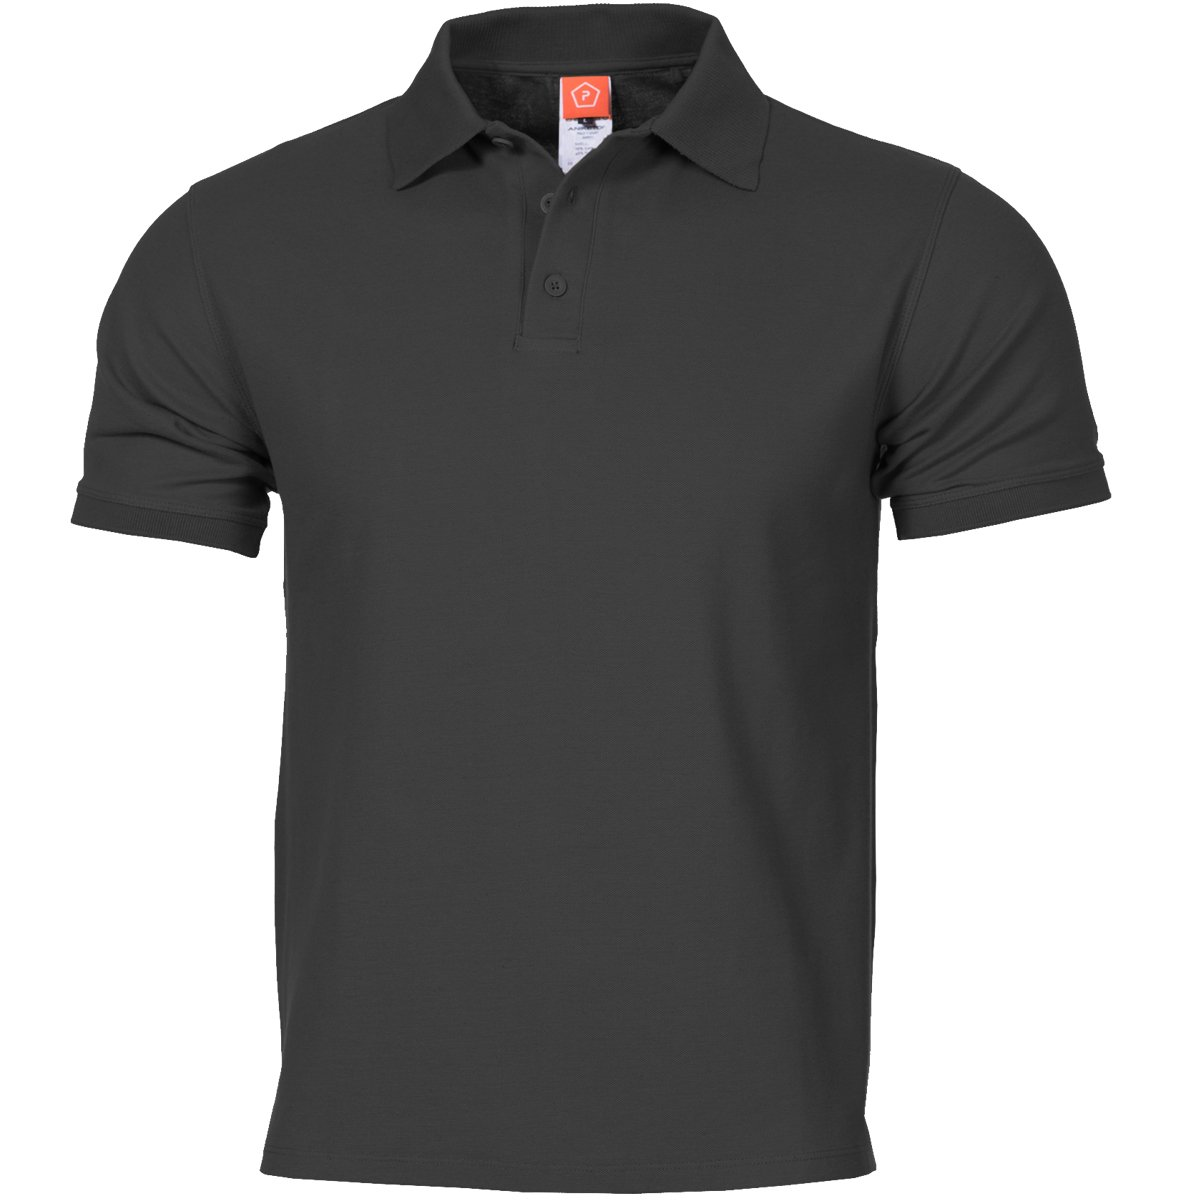 Pentagon Mens Aniketos Polo T-Shirt Black